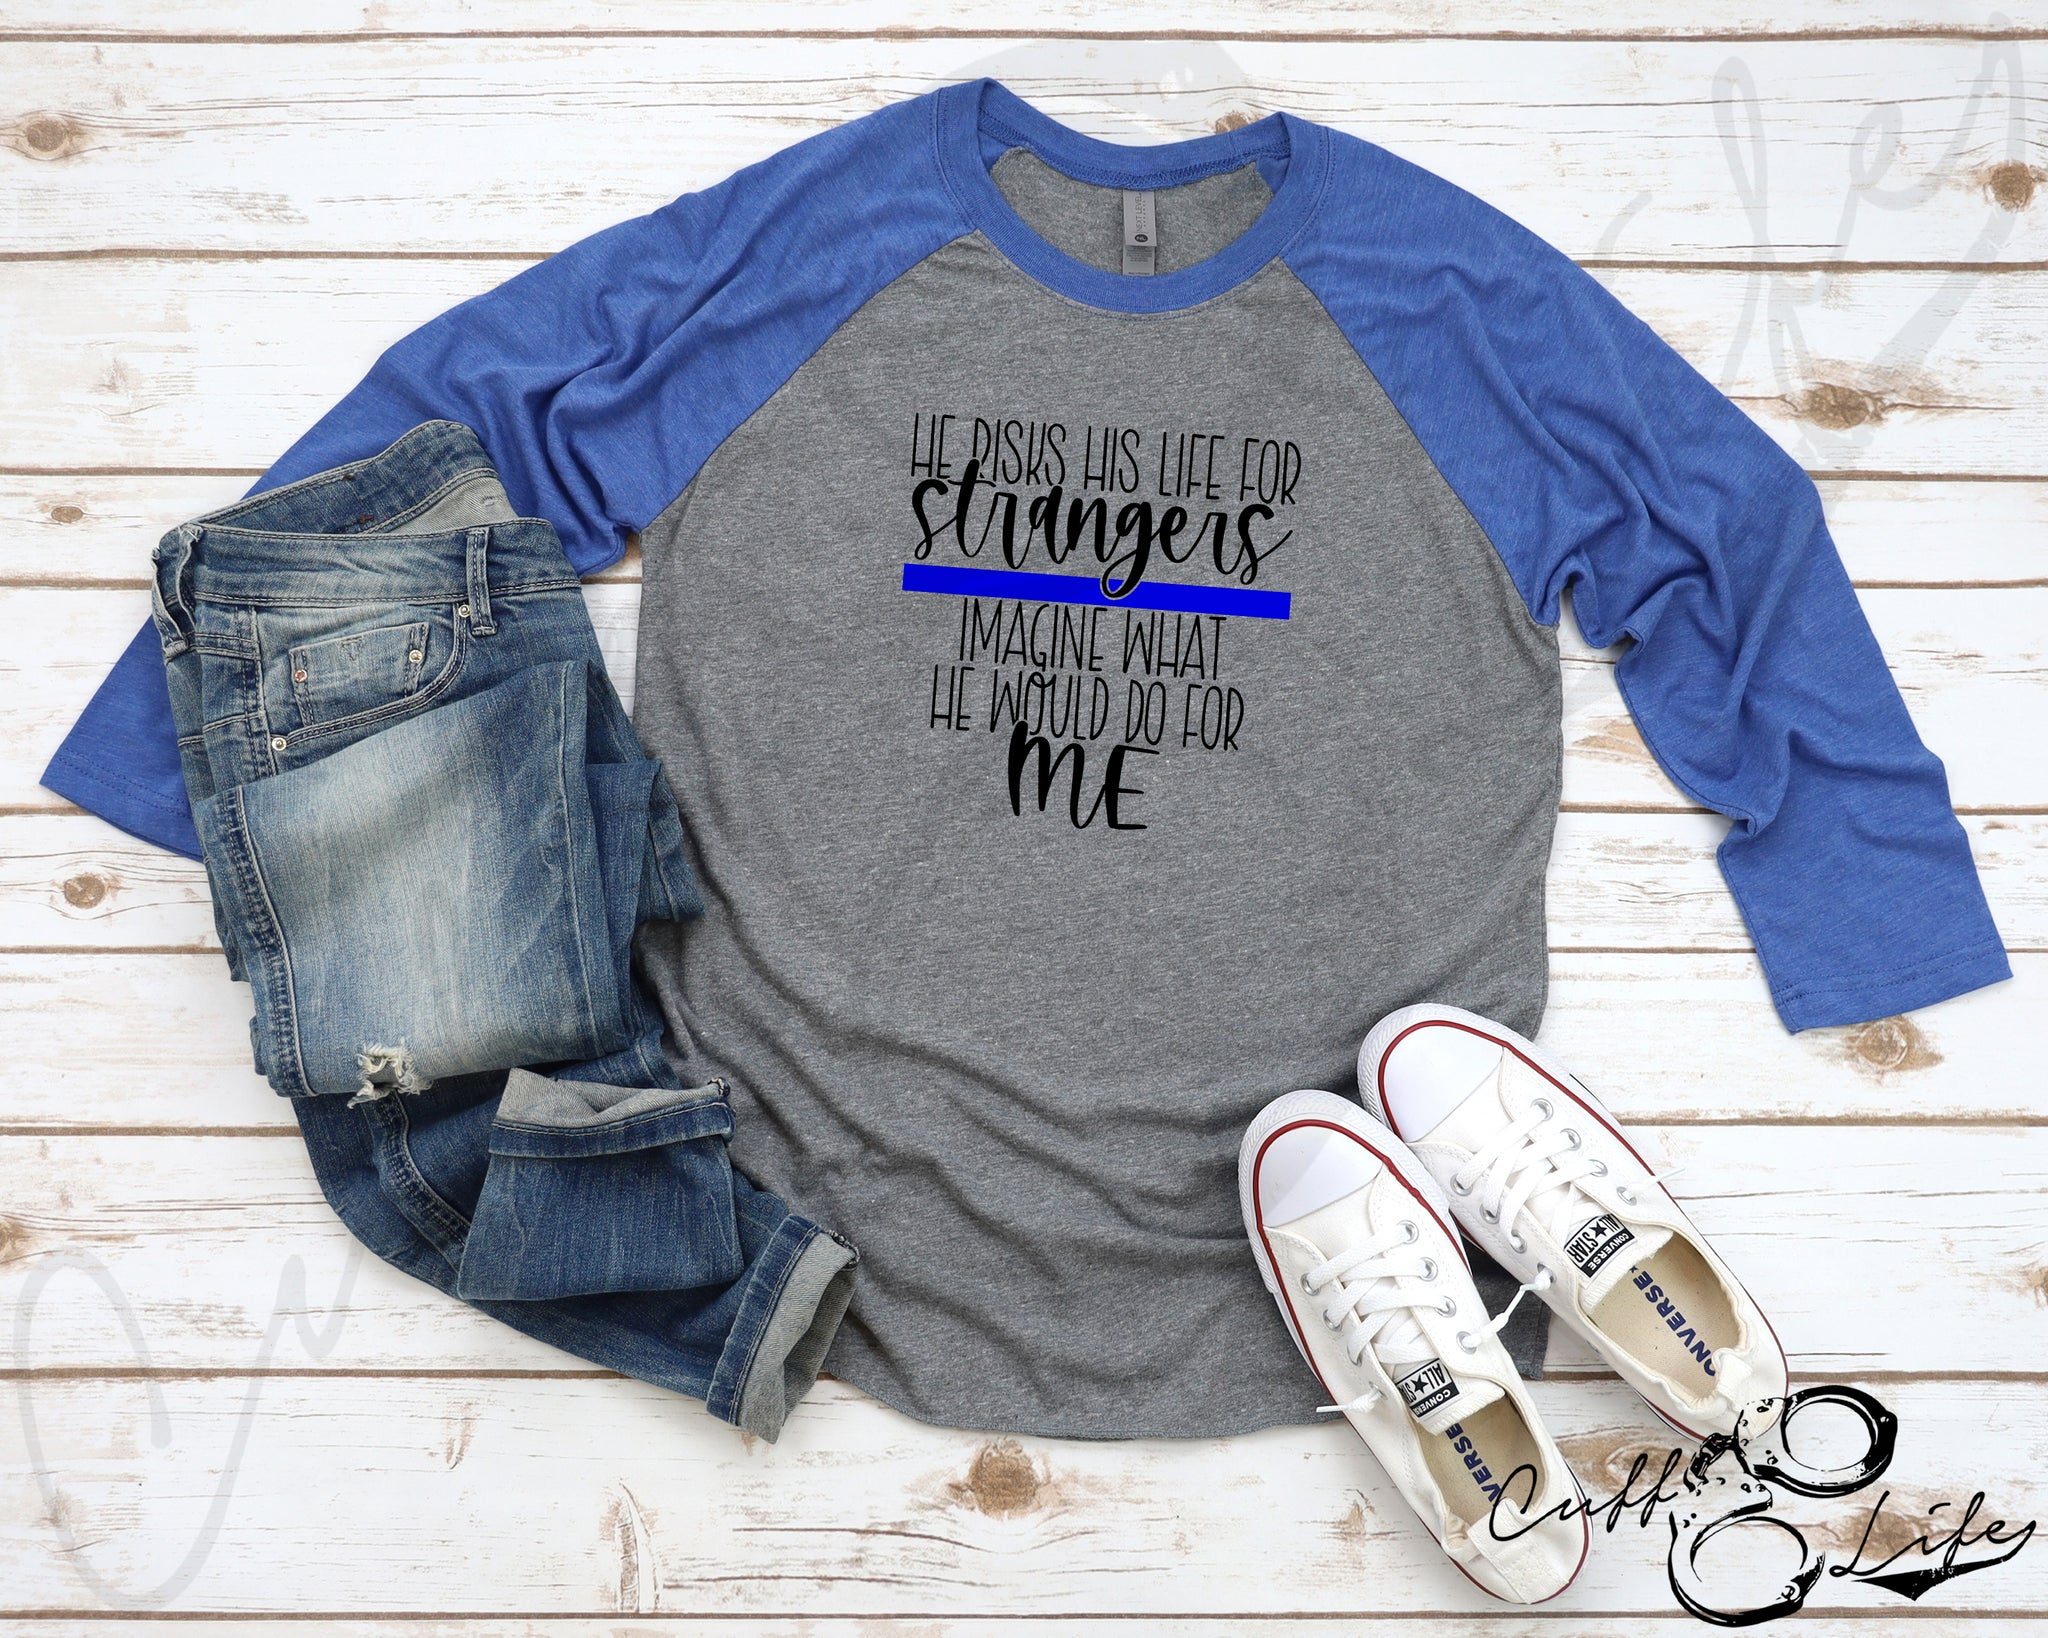 He Risks His Life for Strangers TBL © - 3/4 Sleeve Raglan